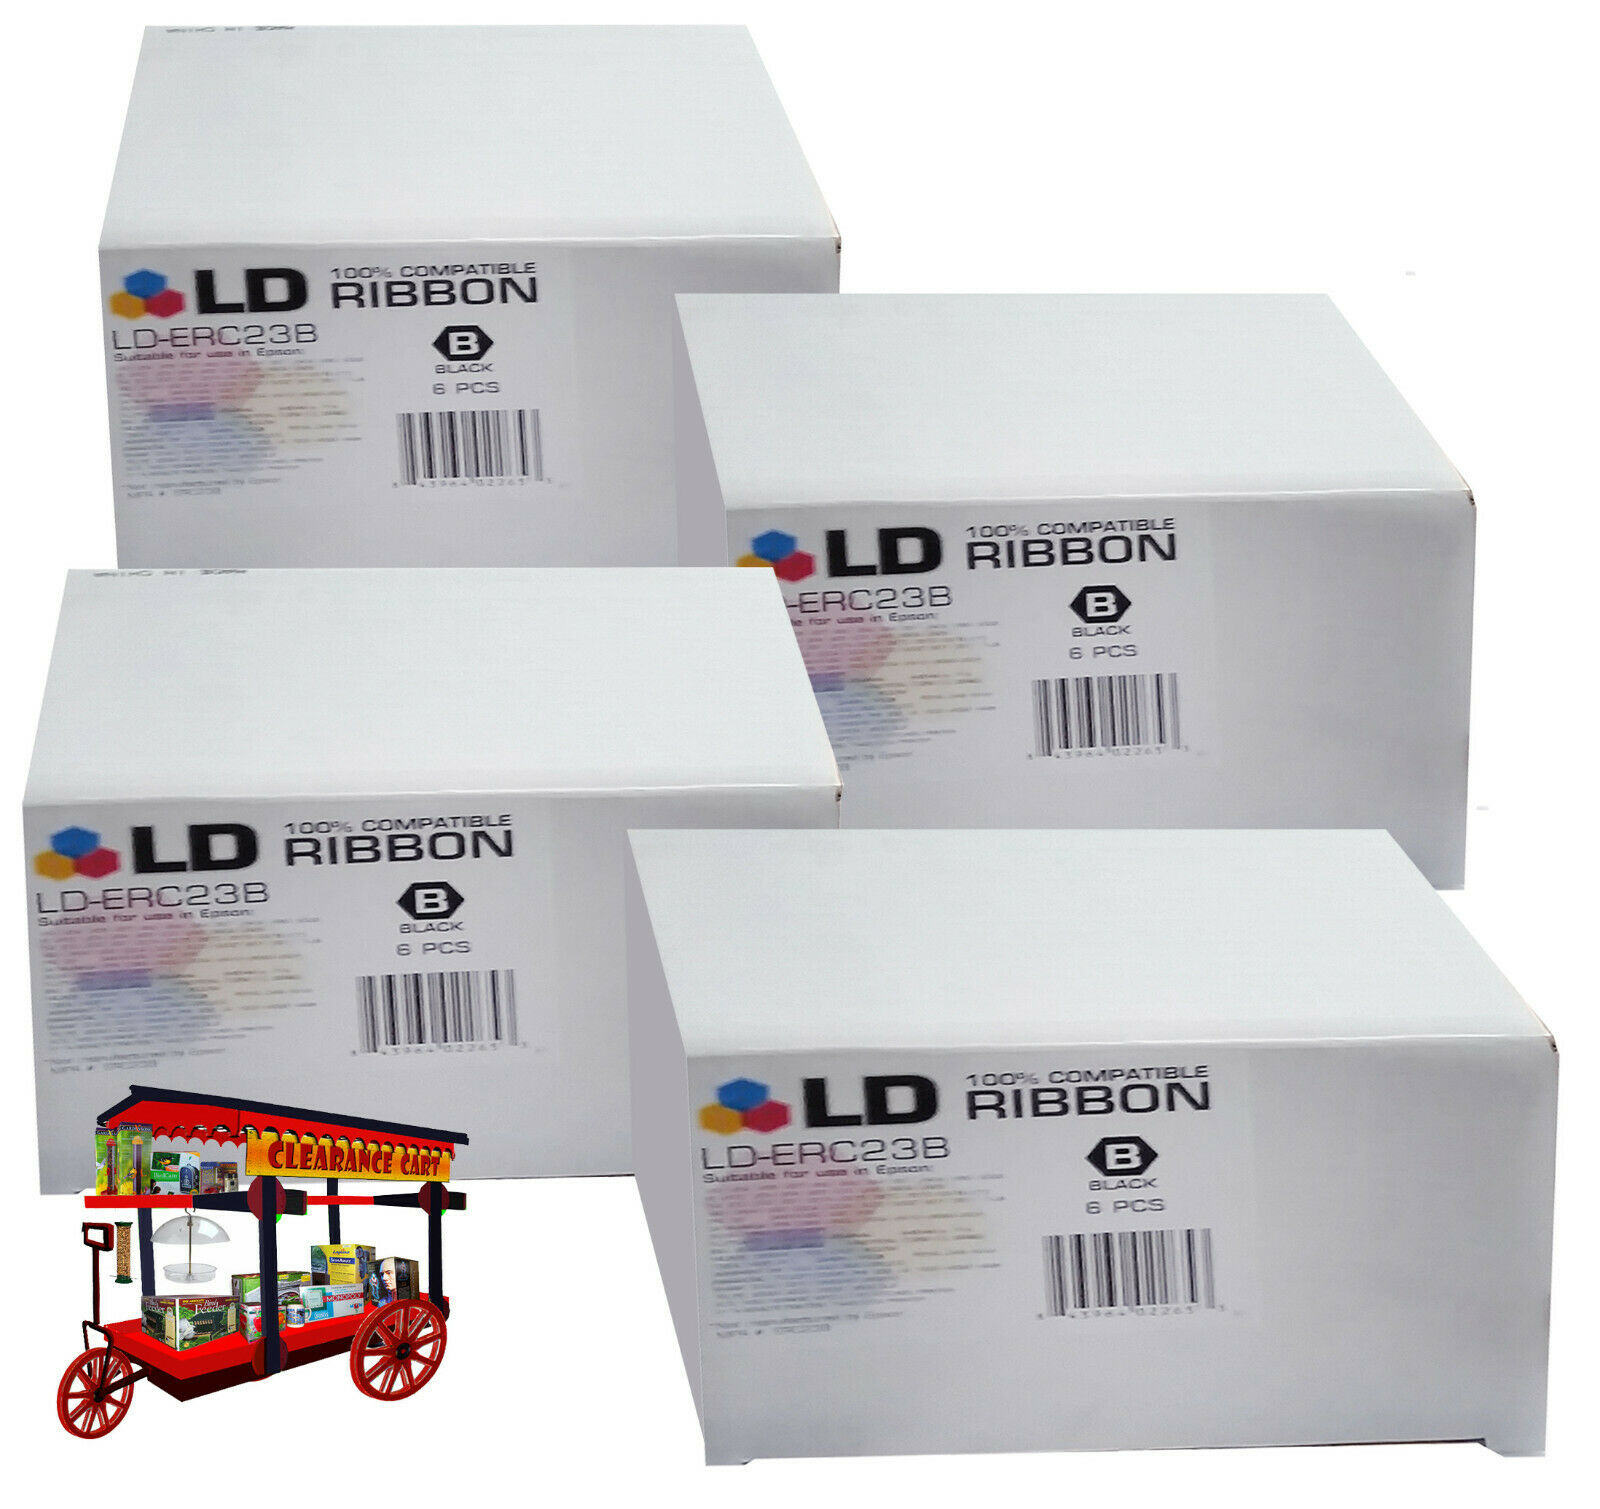 LD-ERC23B - 100% COMPATIBLE ROBBON (4-BOXES OF 6-PCS. EA. / BLACK)